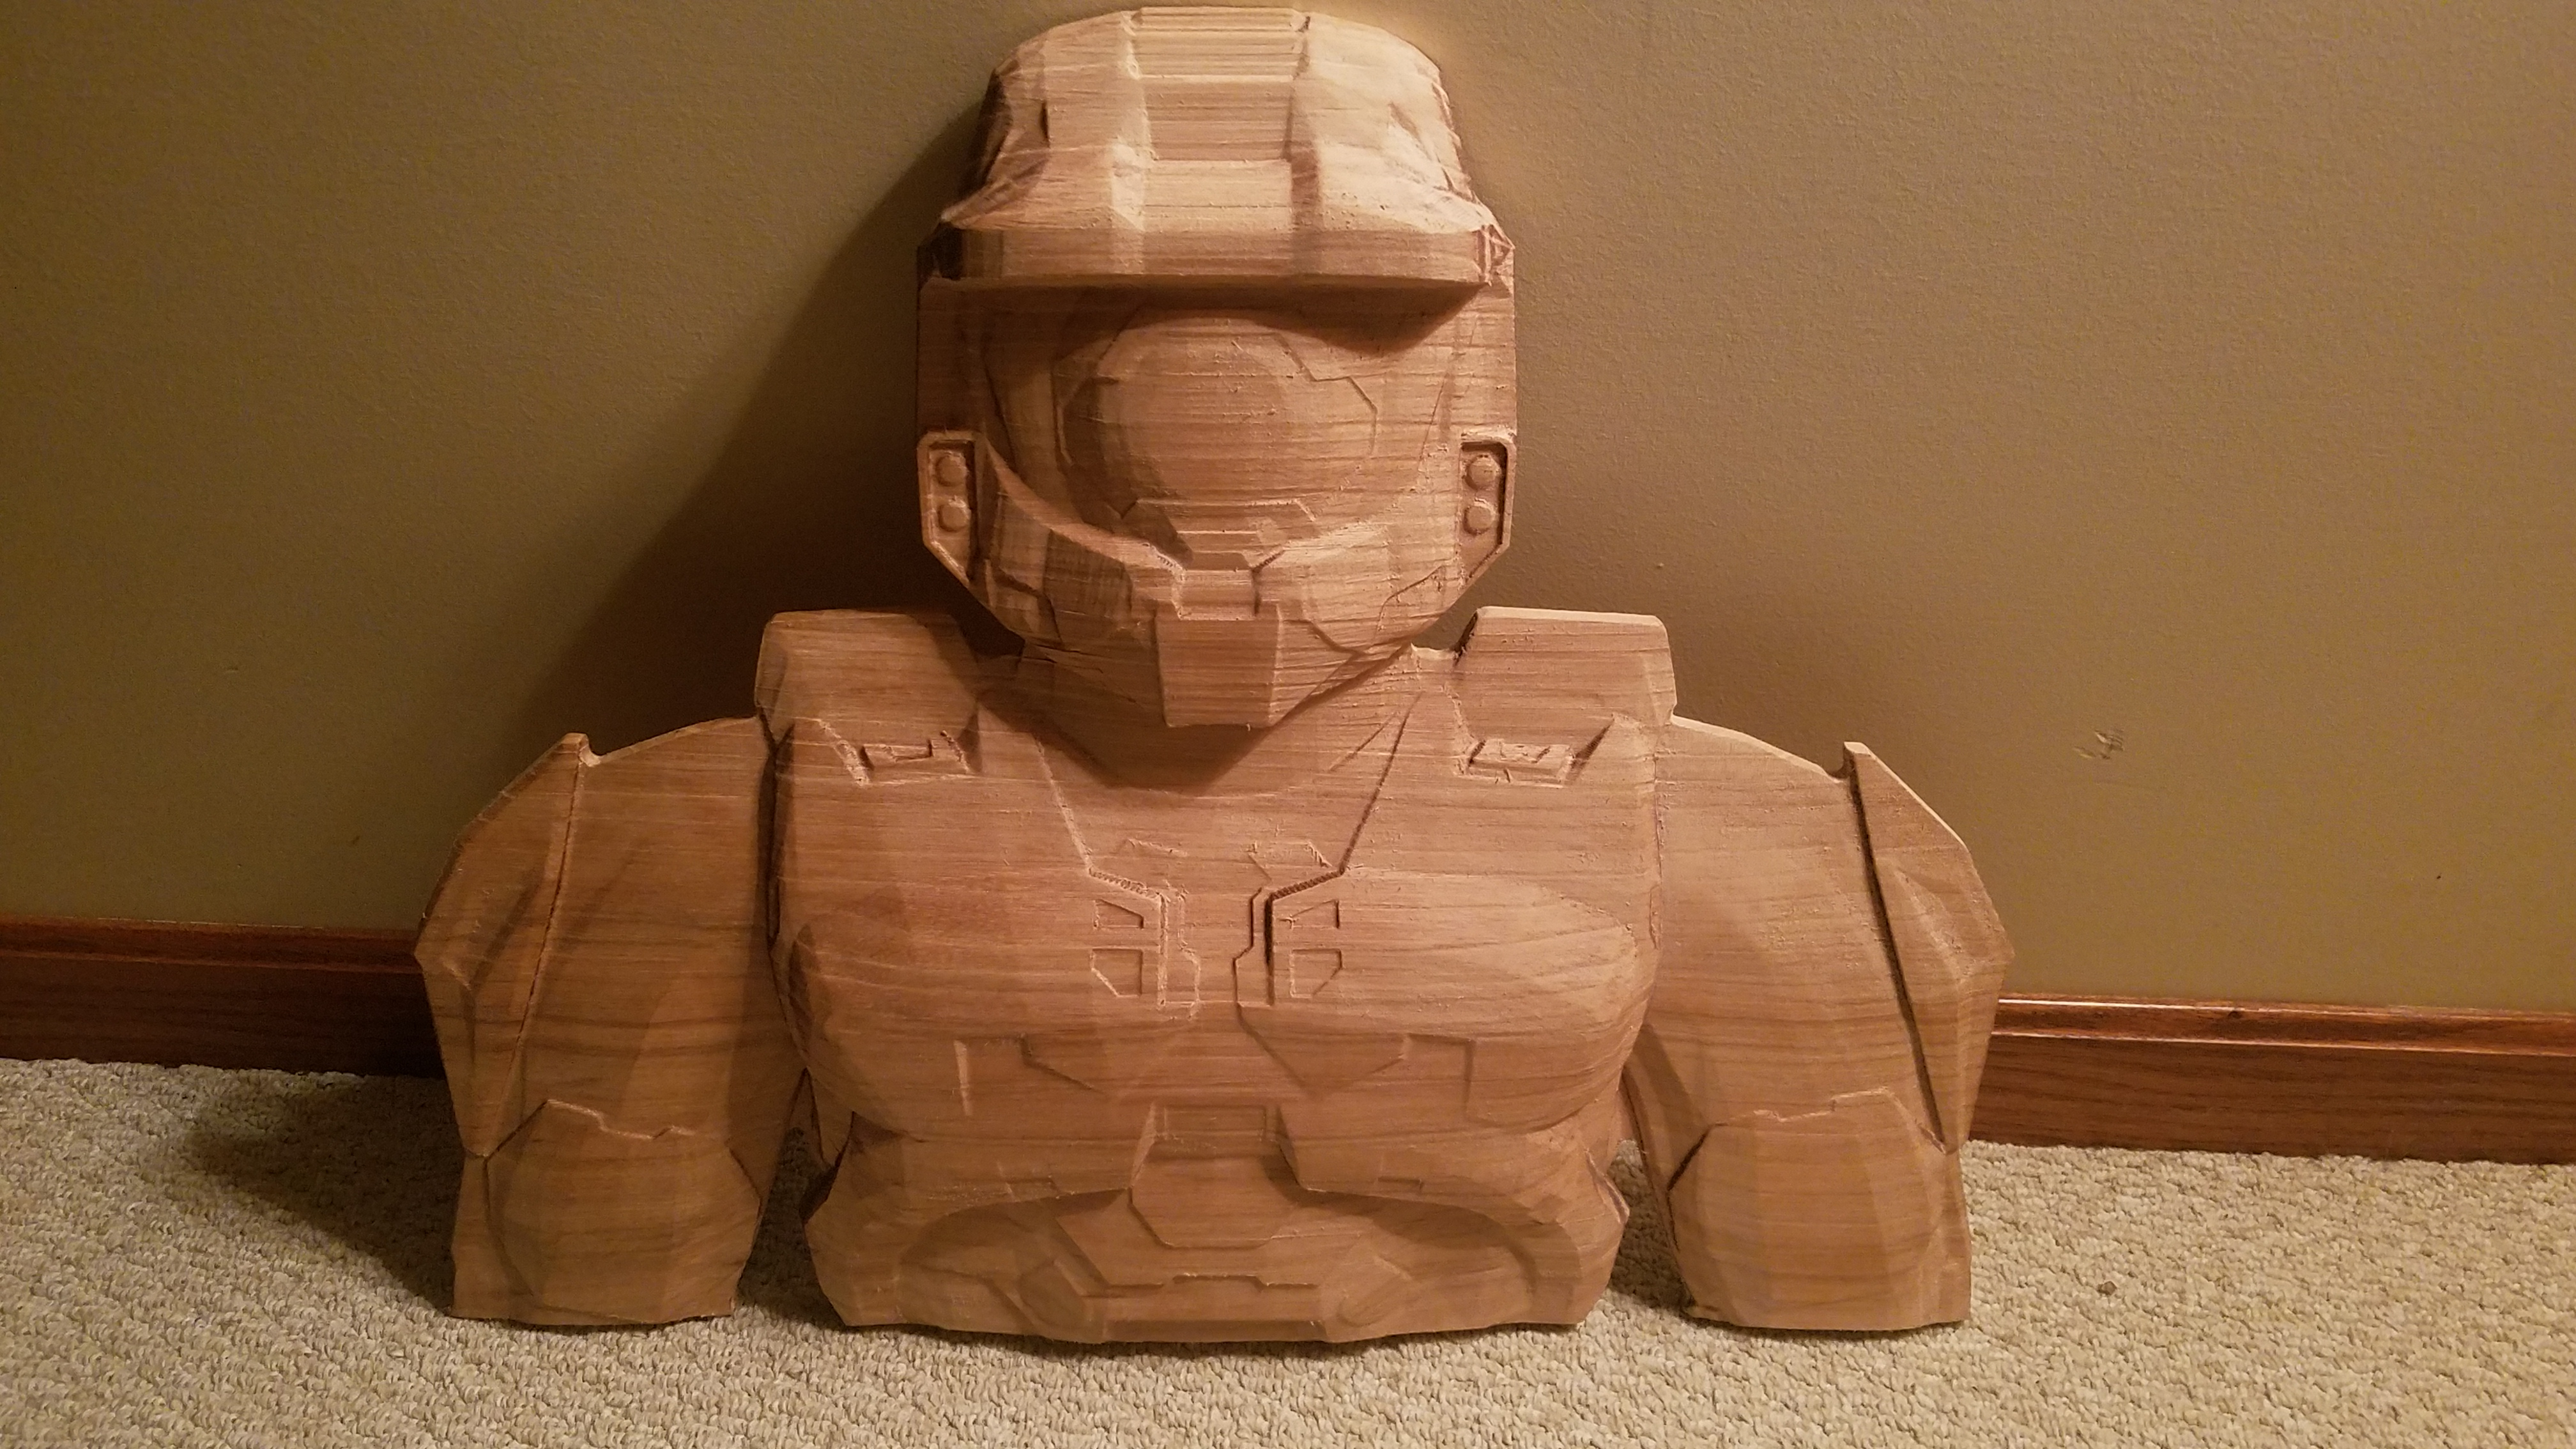 Halo Master Chief remixed for CNC